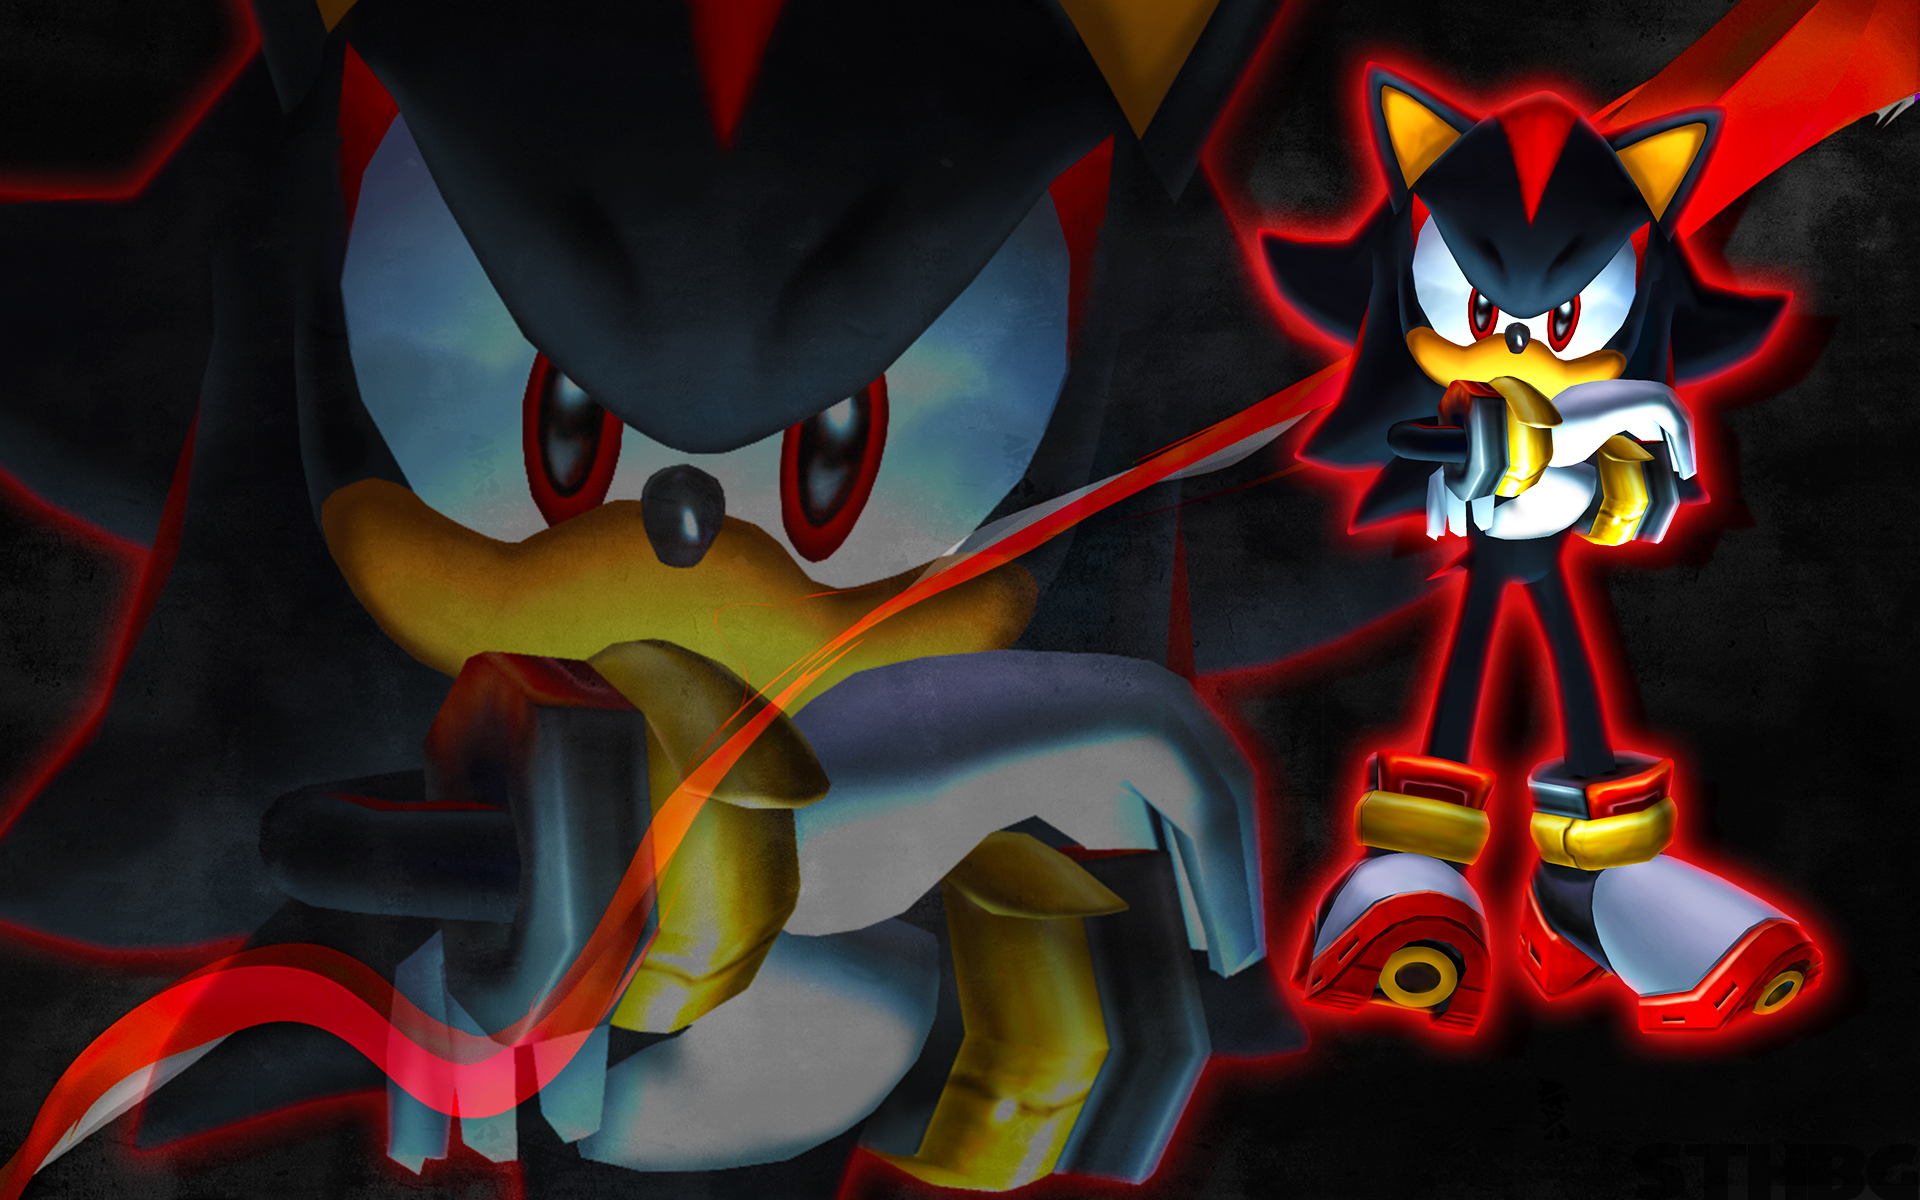 Sonic adventure 2 shadow wallpaper by sonicthehedgehogbg - Jeux de sonic vs shadow ...